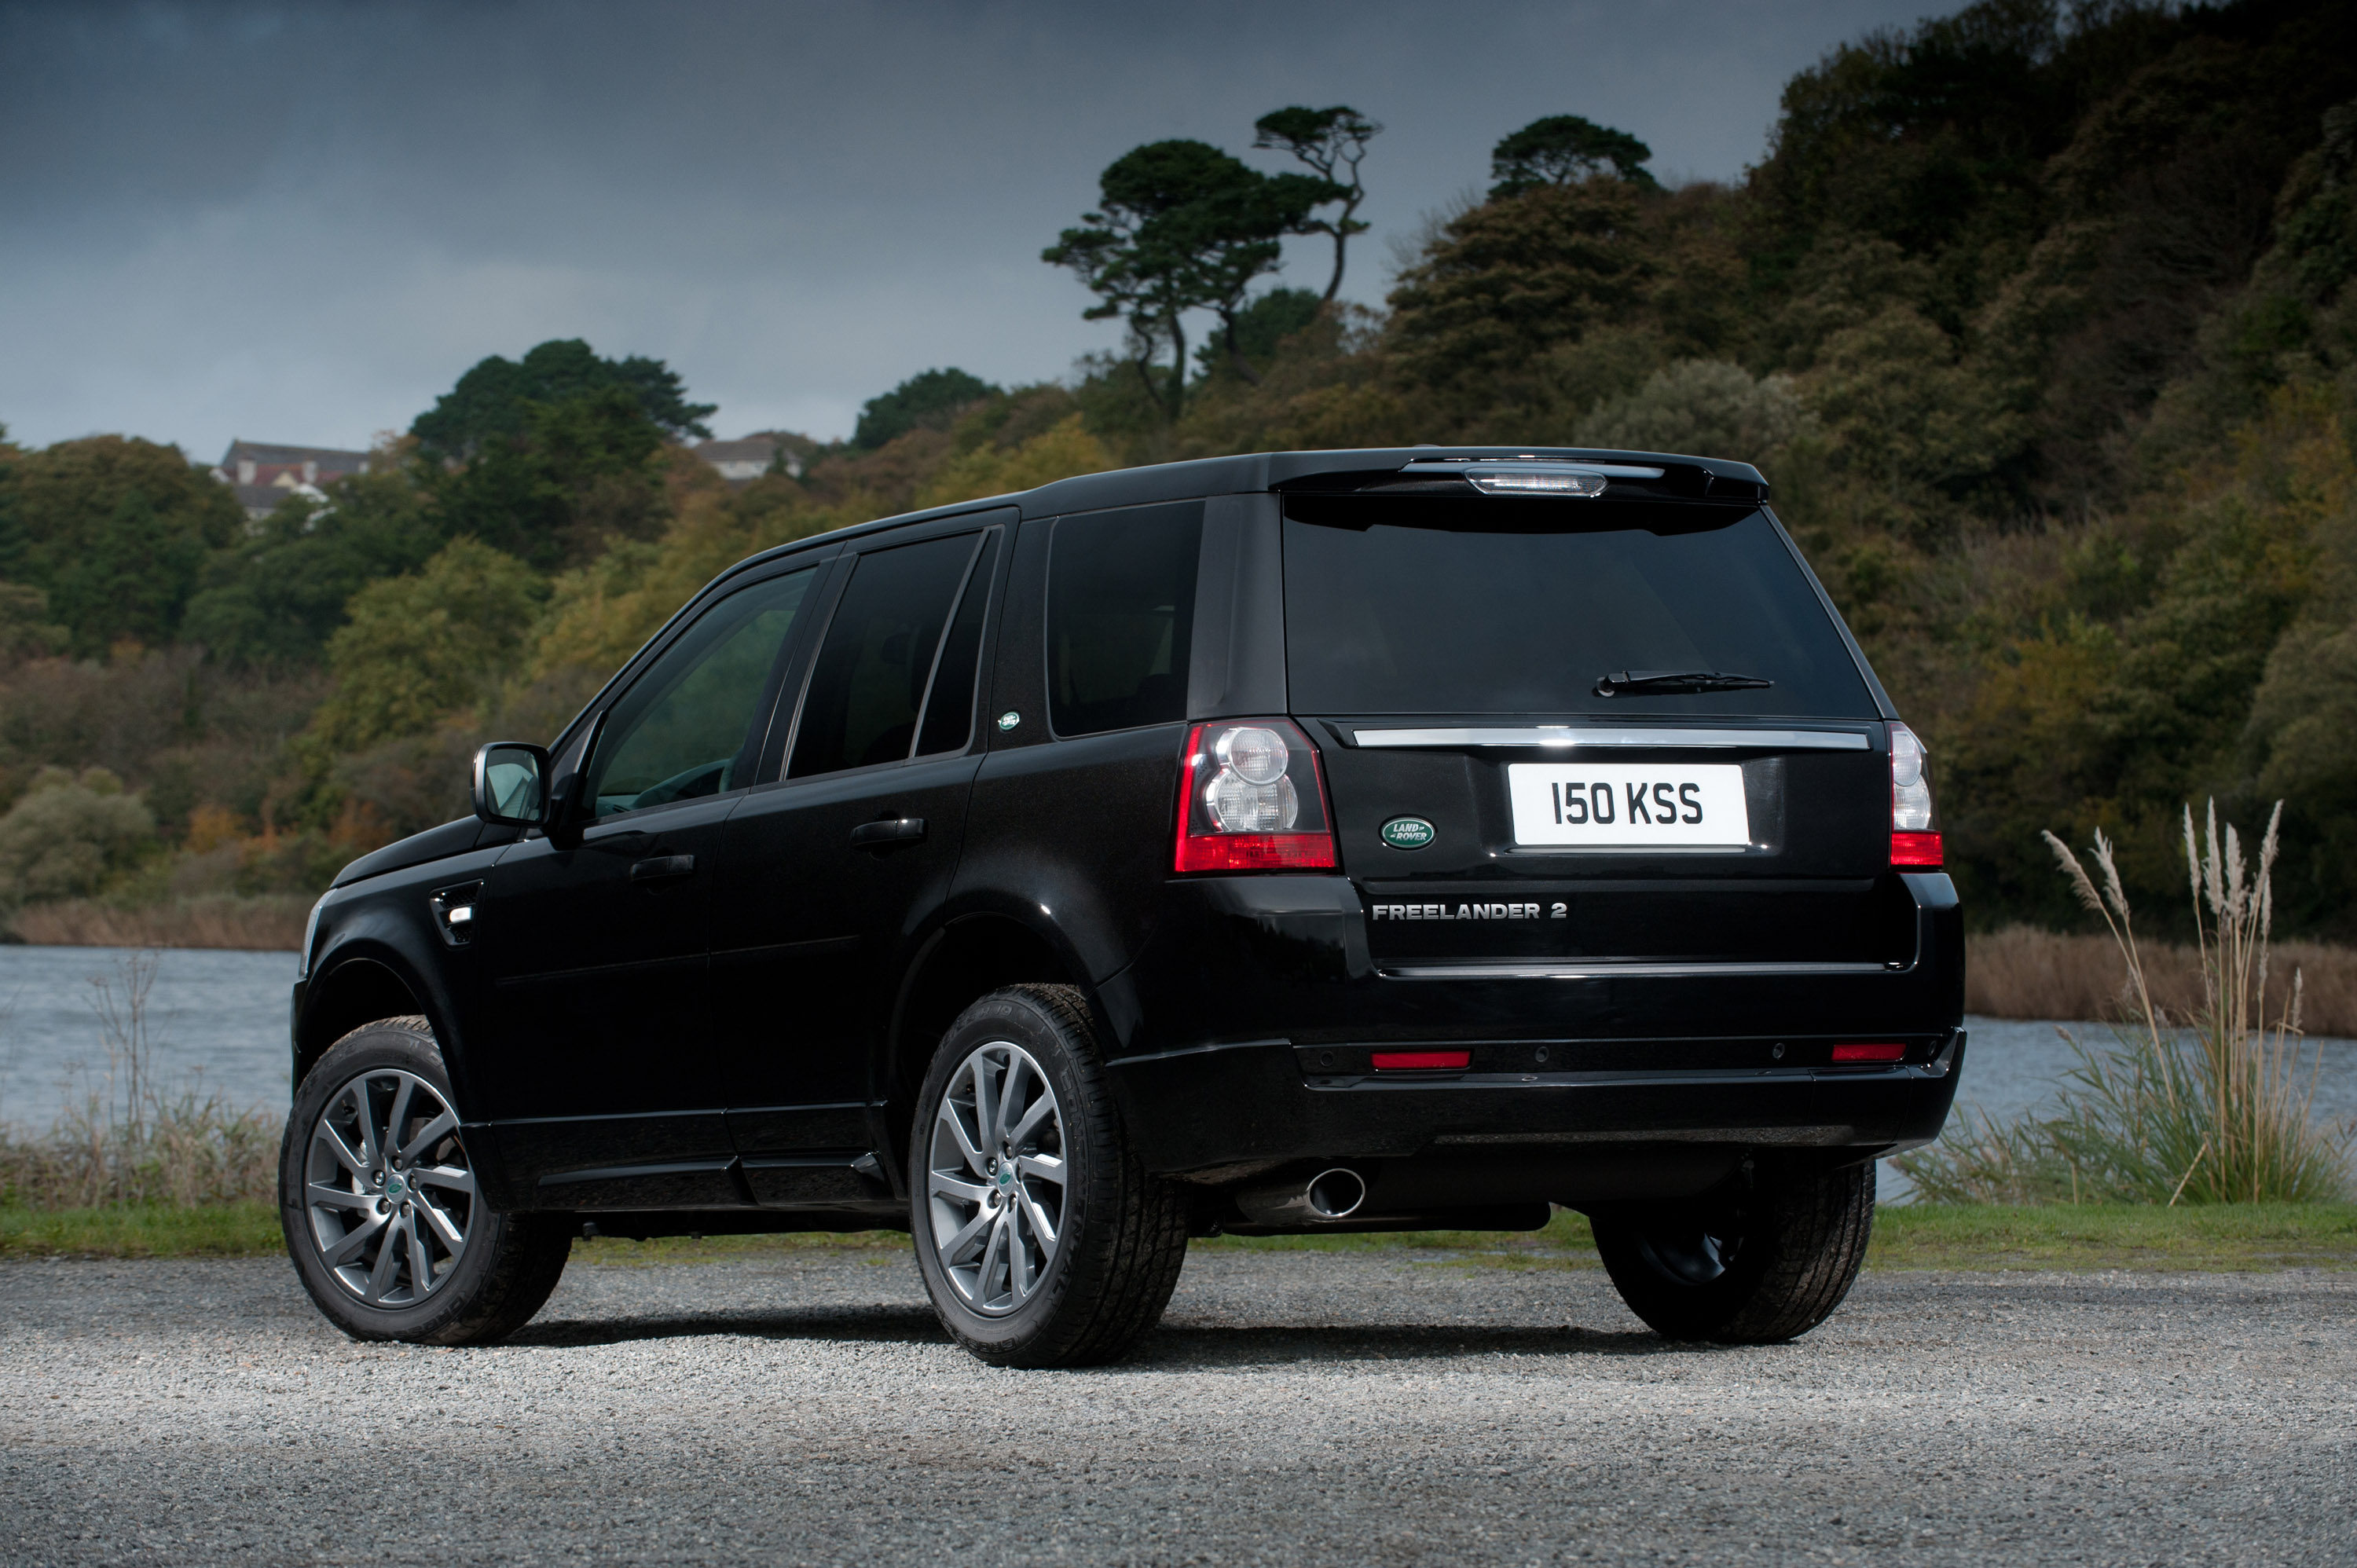 https://www.automobilesreview.com/gallery/land-rover-freelander-2-sd4-sport-limited-edition/land-rover-freelander-2-sd4-sport-limited-edition-07.jpg